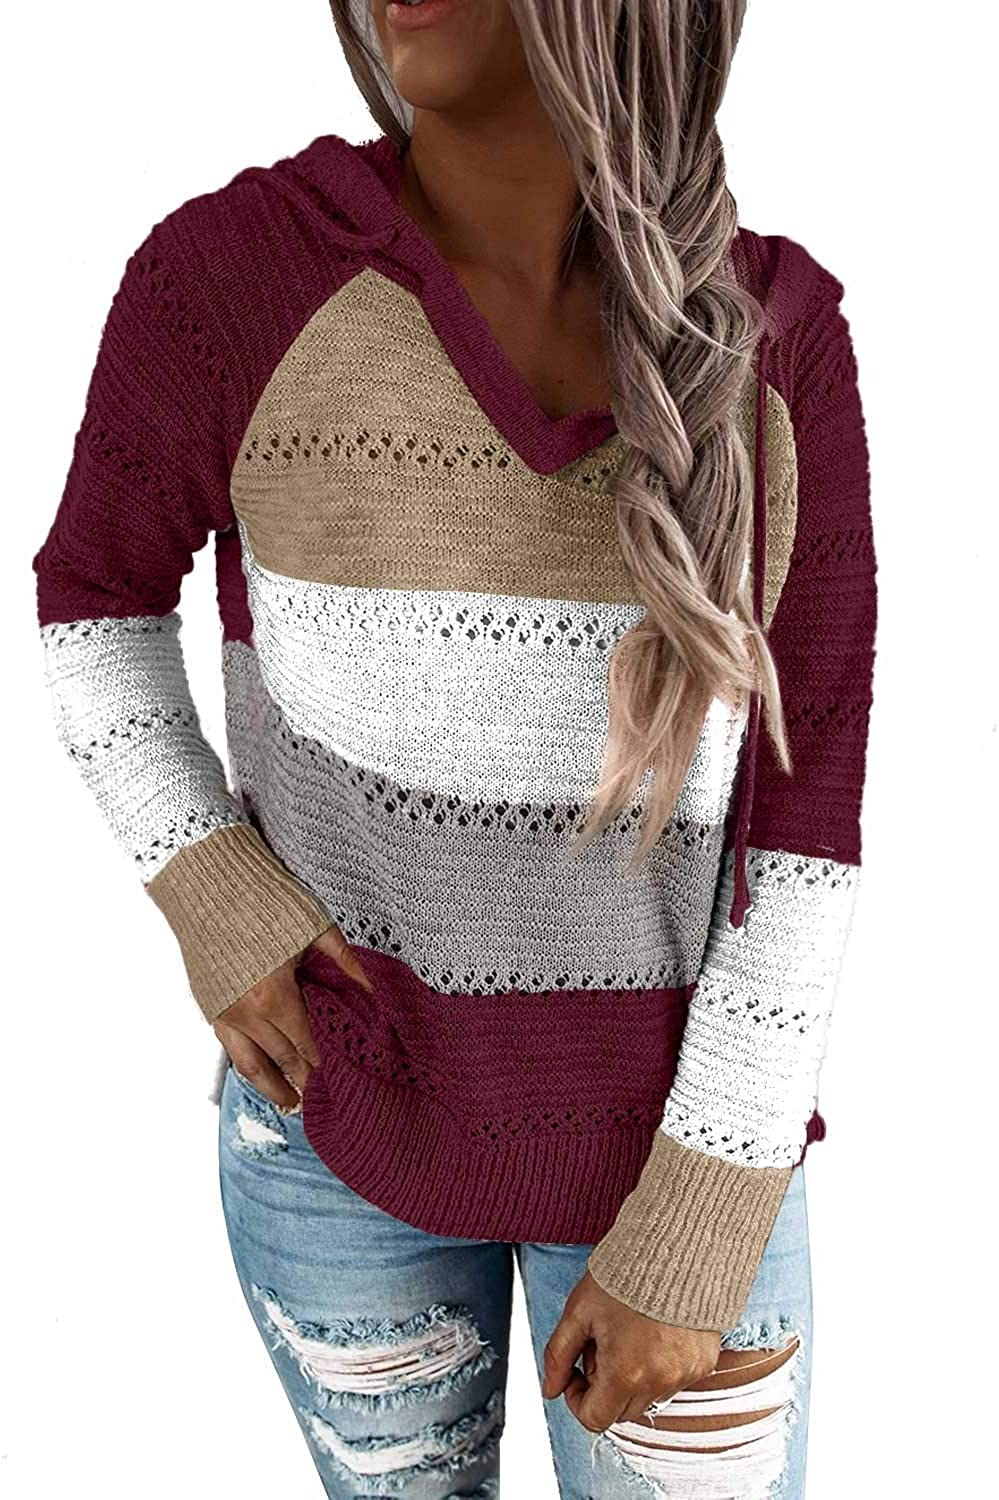 SWQZVT Women's Hoodies V Neck Boho Knit Pullover Color Block Hooded Sweaters Striped Drawstring Jumper with Pocket